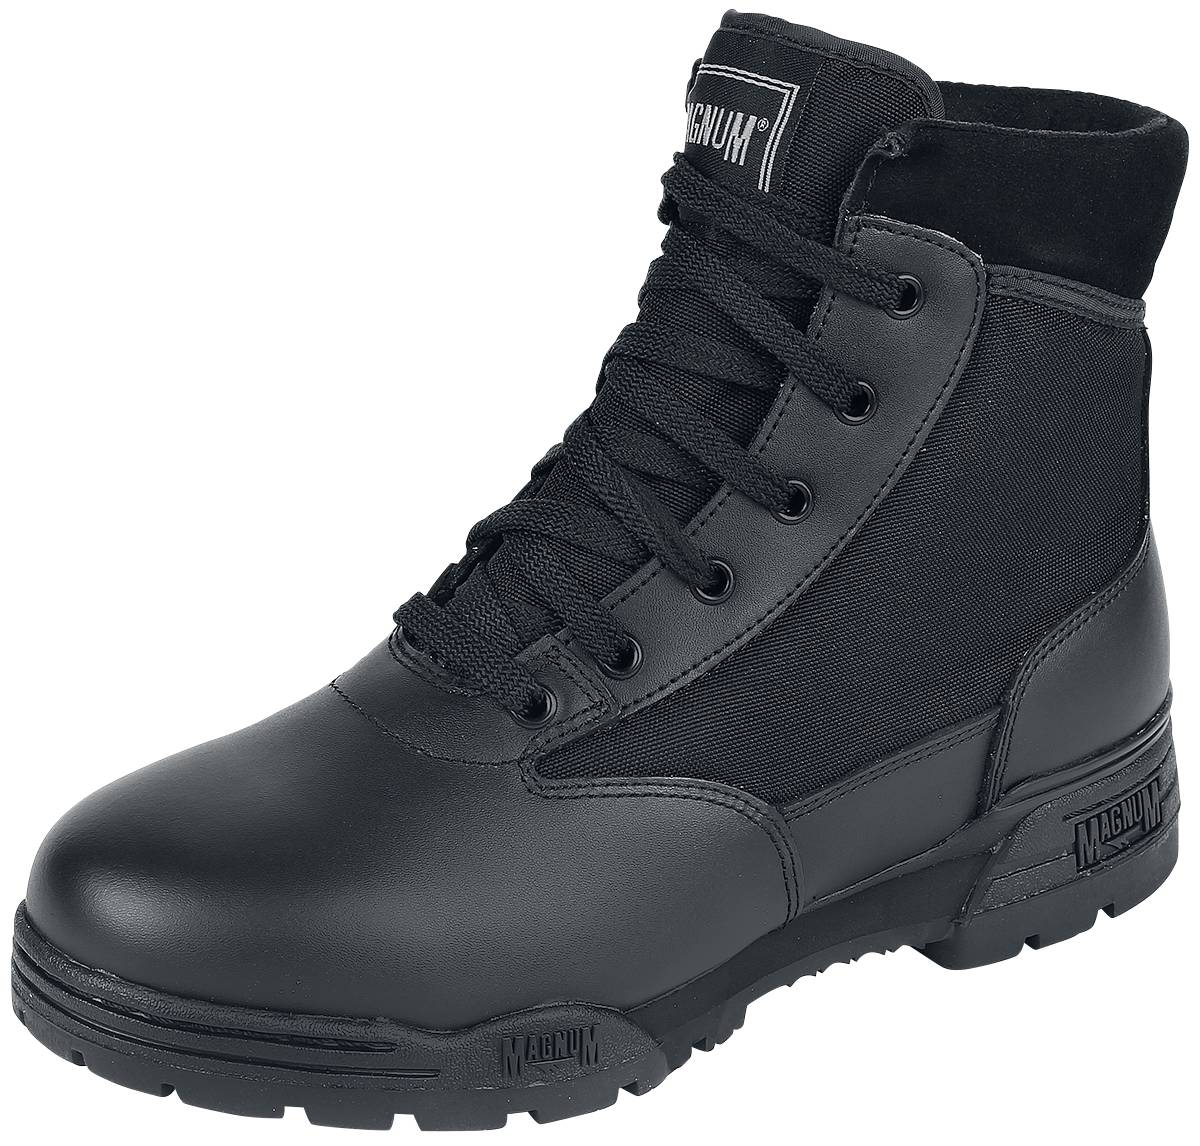 a97b8033 magnum classic boots black size 4, only the best prices and offers ...